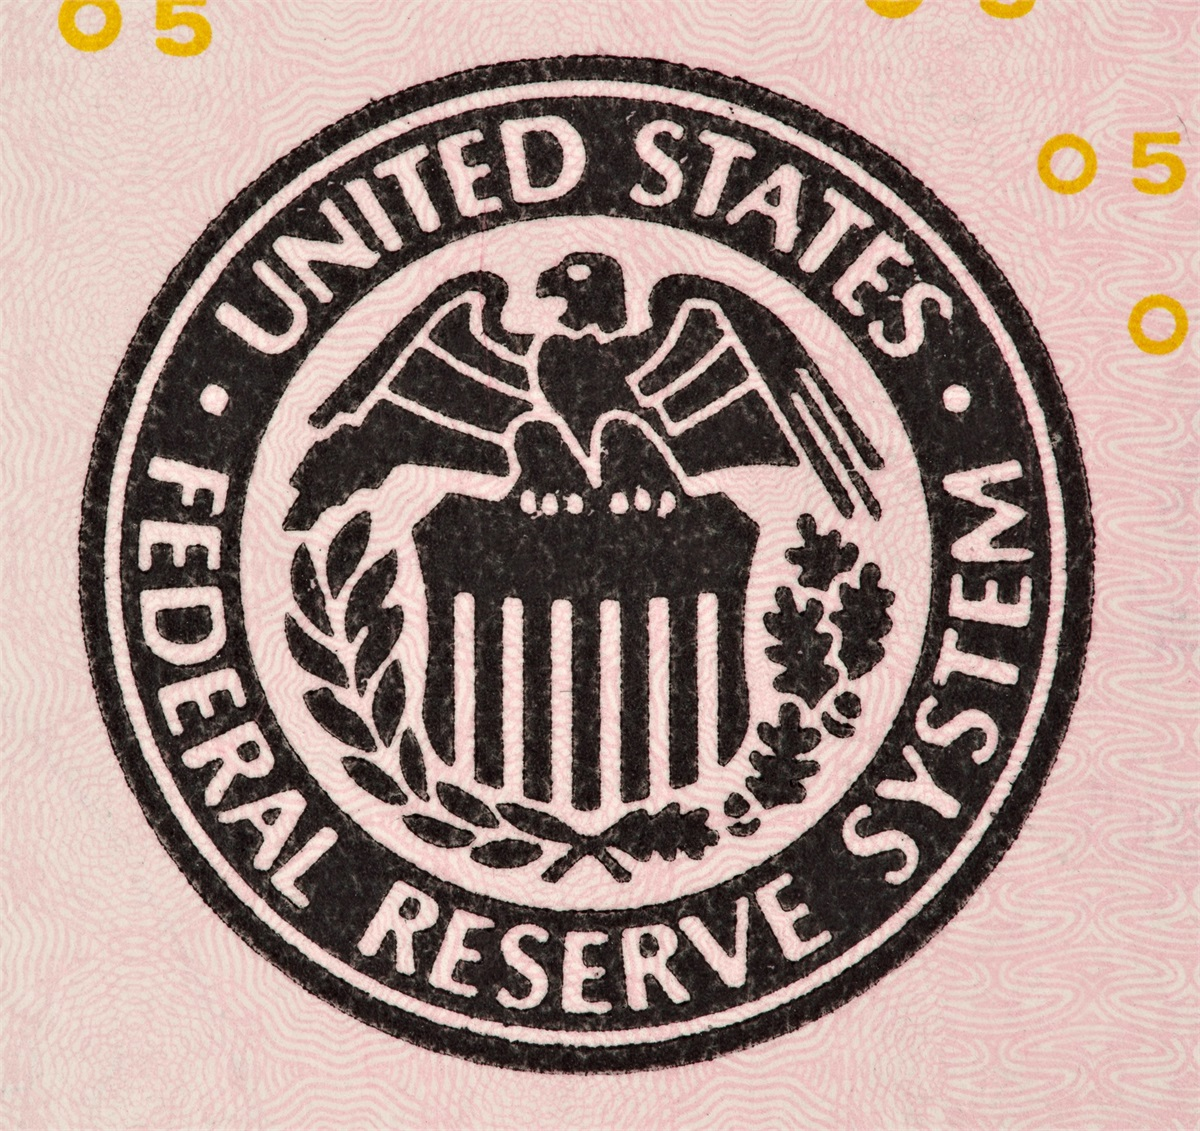 Did last week mark the start of a new policy for the Federal Reserve?